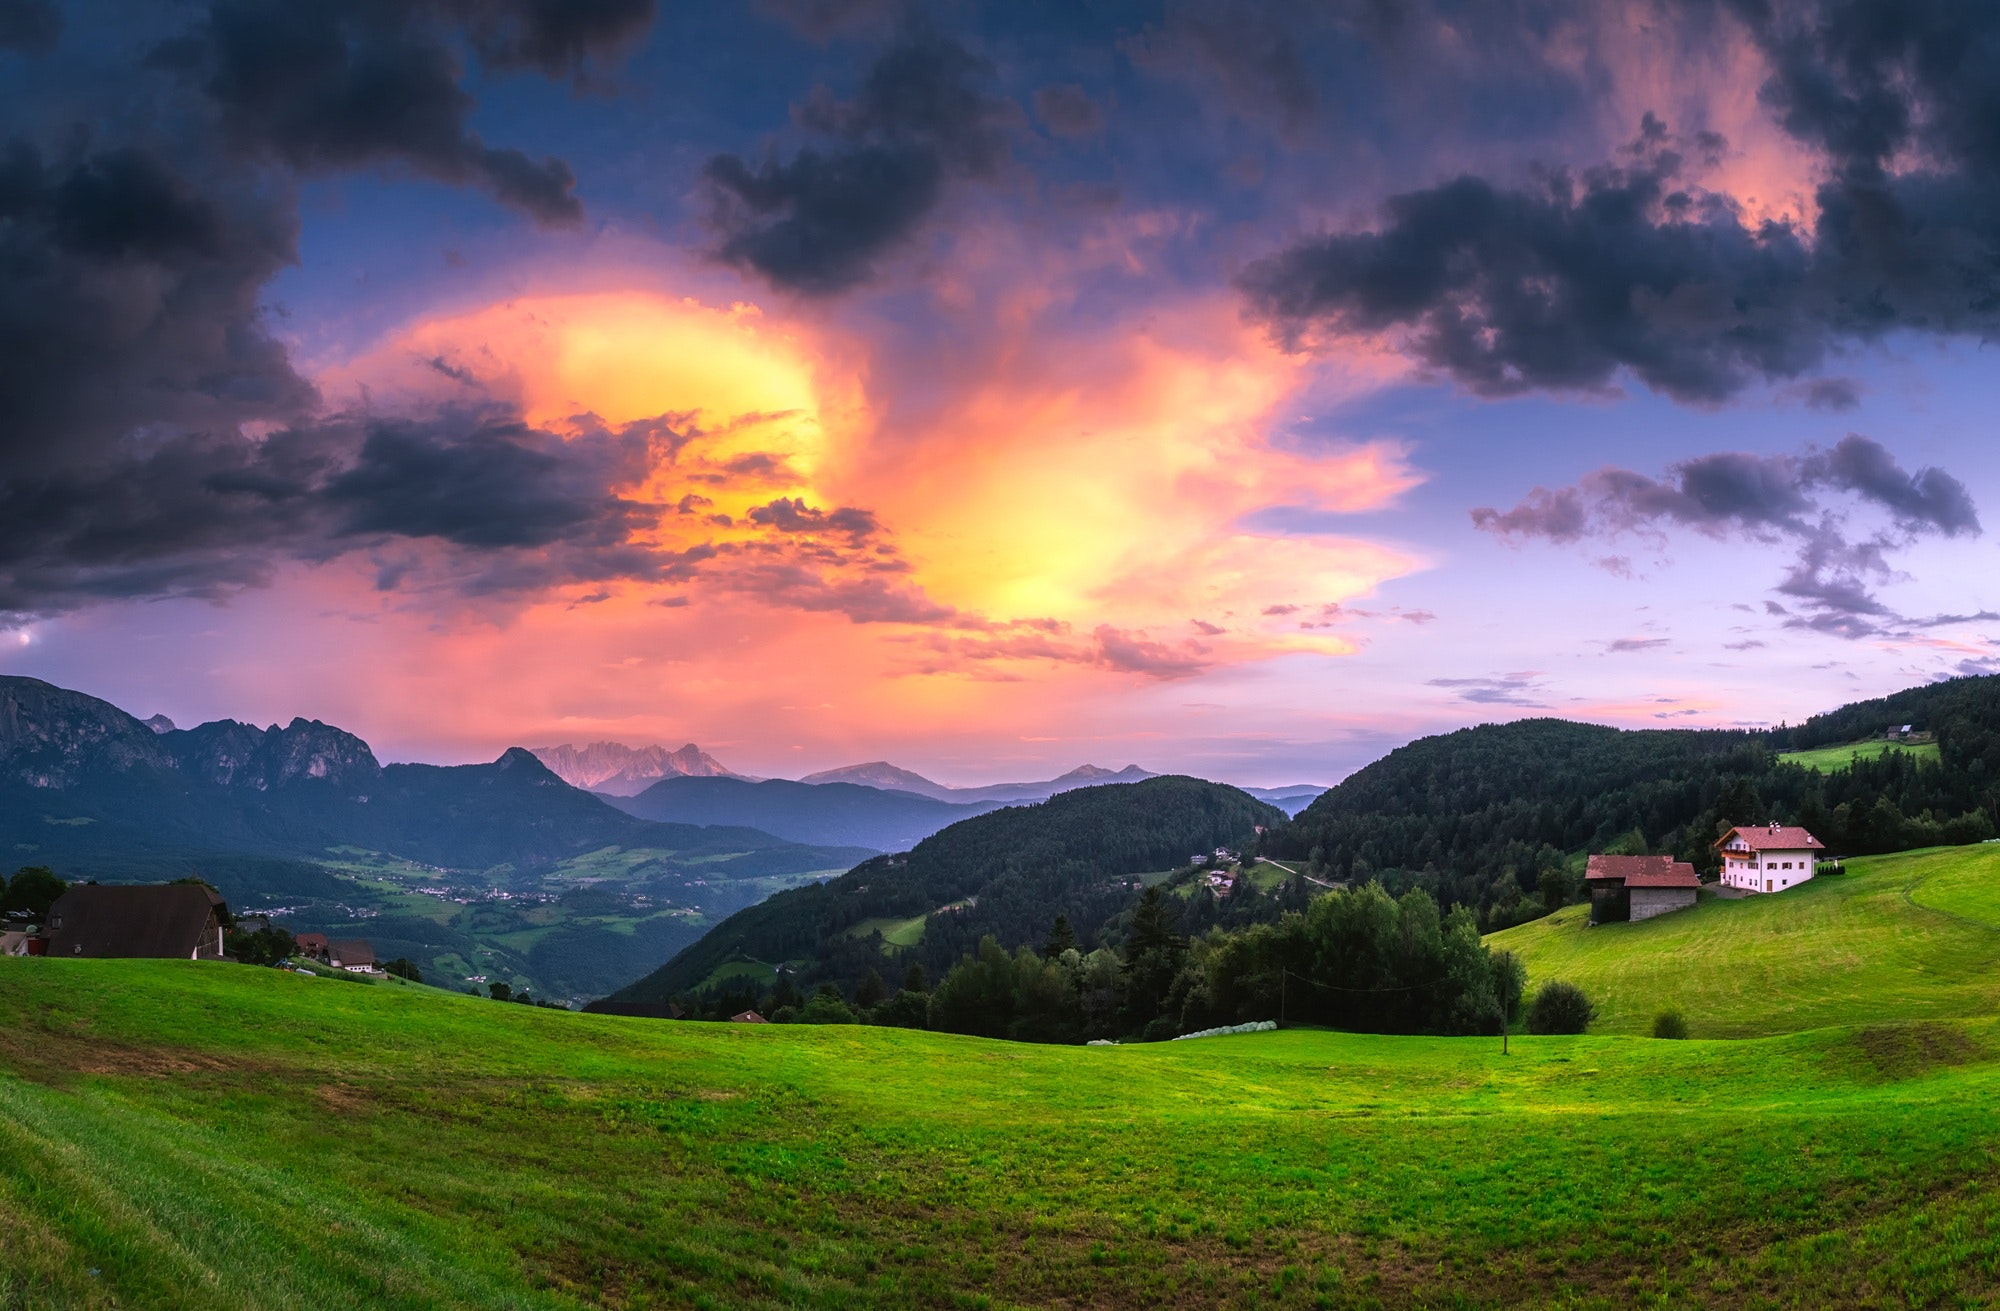 Scenic View of Landscape Against Cloudy Sky, Beautiful, Meadow, Valley, Vacation, HQ Photo